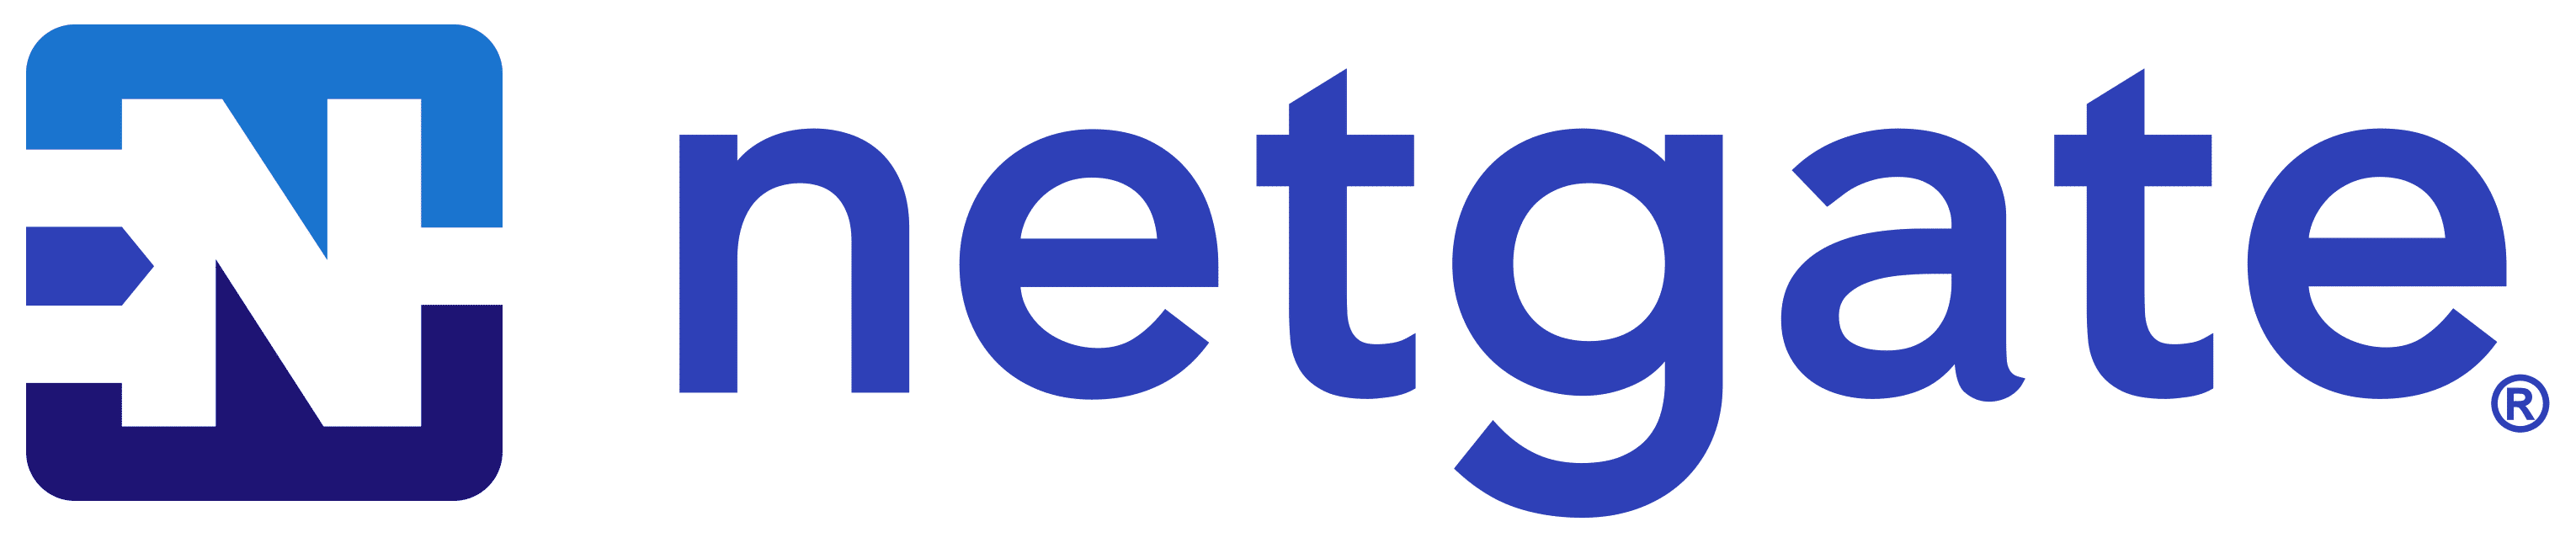 Netgate Logo, Colour.